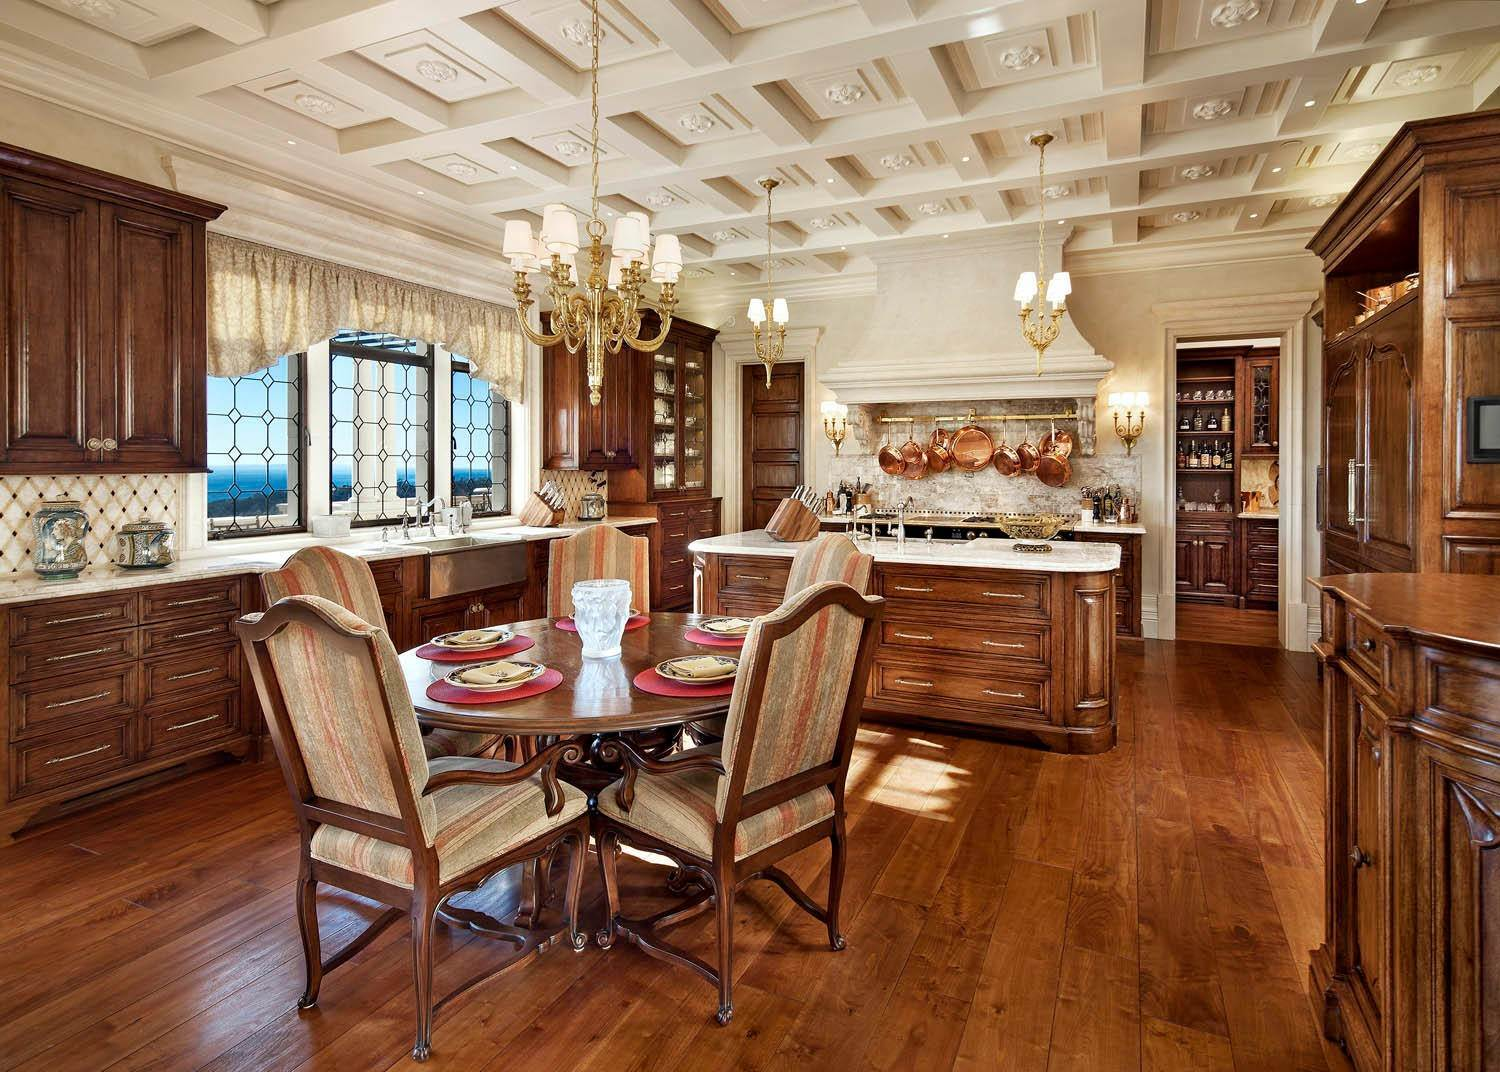 10. Estate for Sale at 1395 Oak Creek Canyon Road Montecito, California 93108 United States